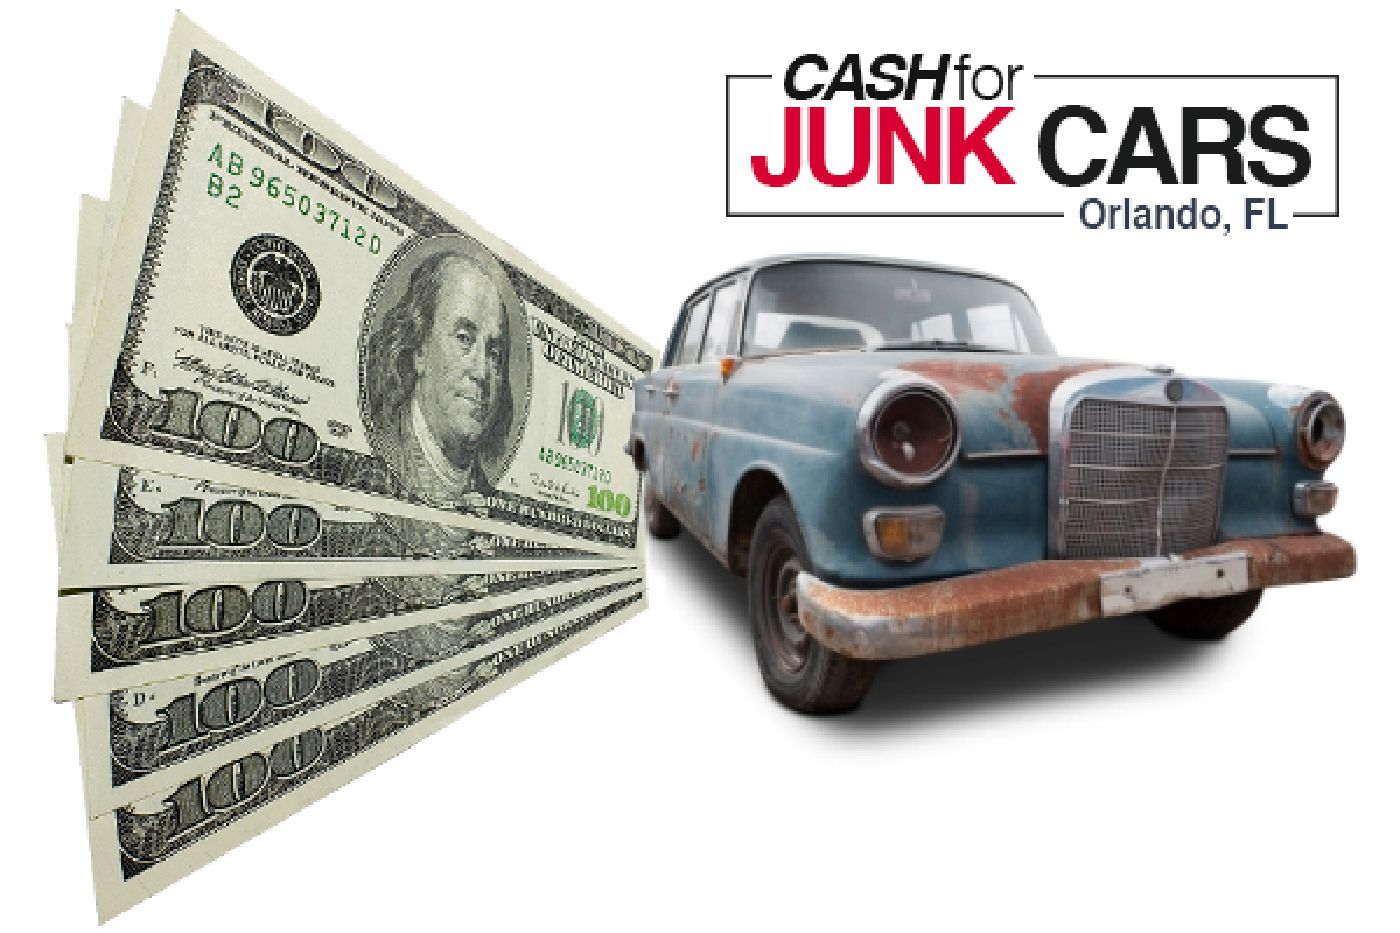 Cash For Junk Cars Orlando Florida